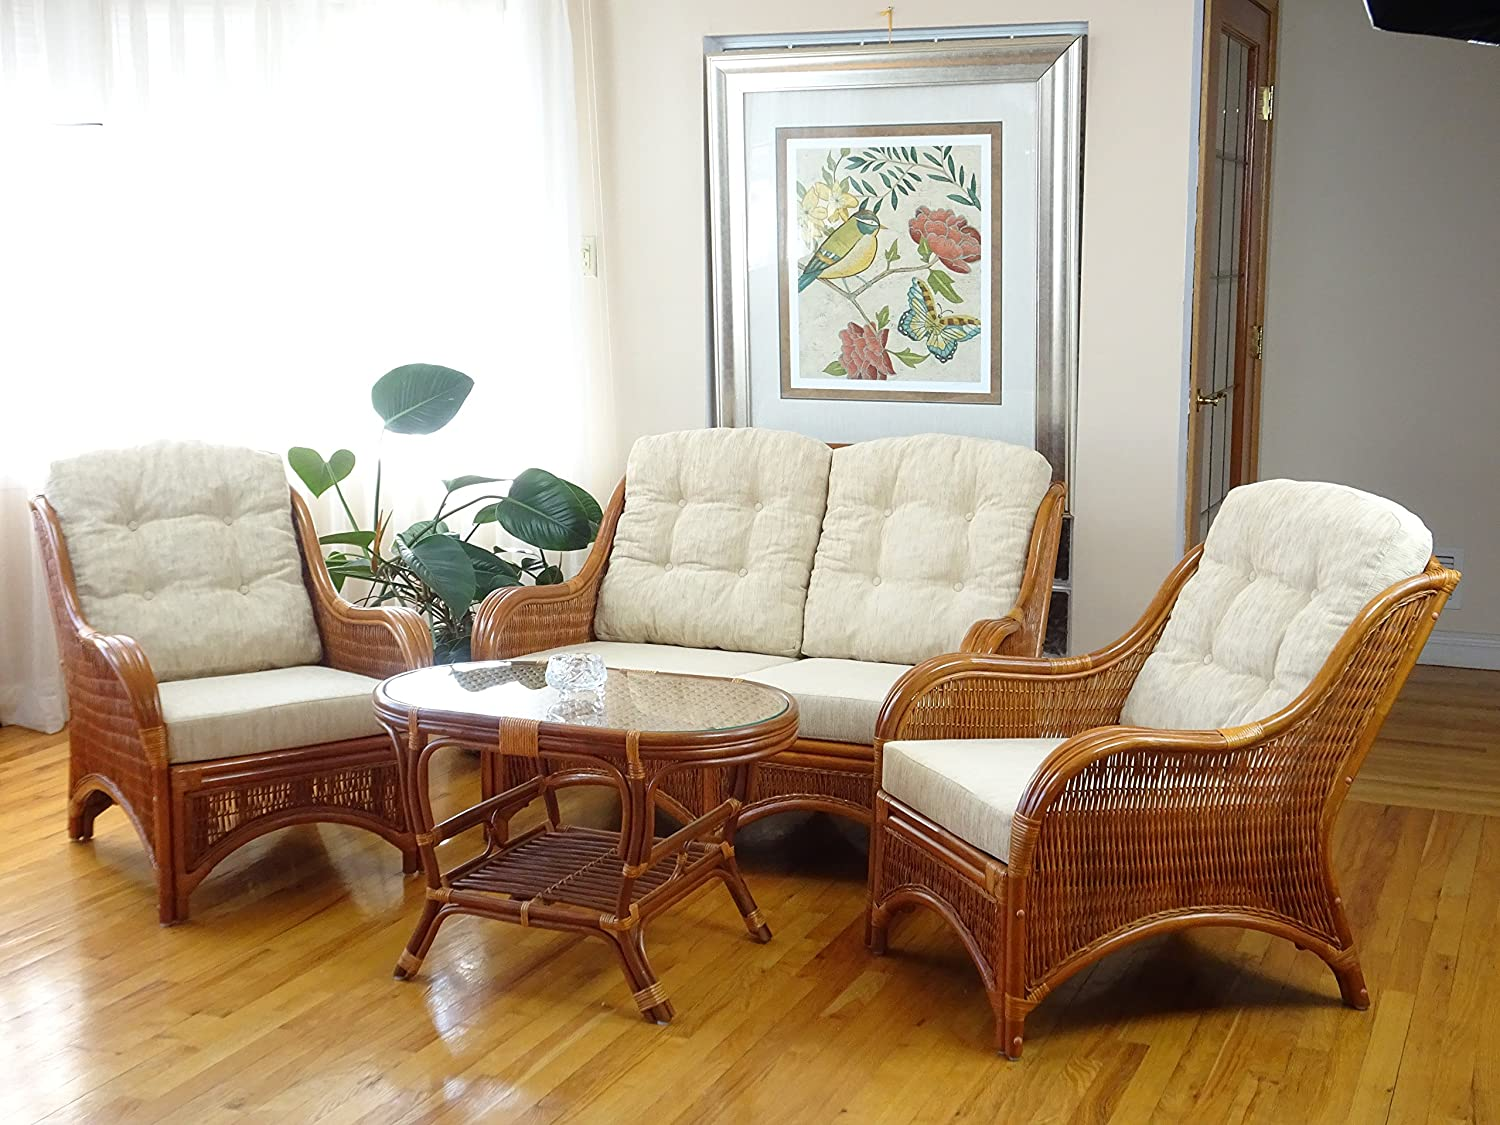 Amazon Com Jam Rattan Wicker Living Room Set 4 Pieces 2 Lounge Chair Loveseat Sofa Coffee Table Colonial Light Brown Cream Cushions Kitchen Dining